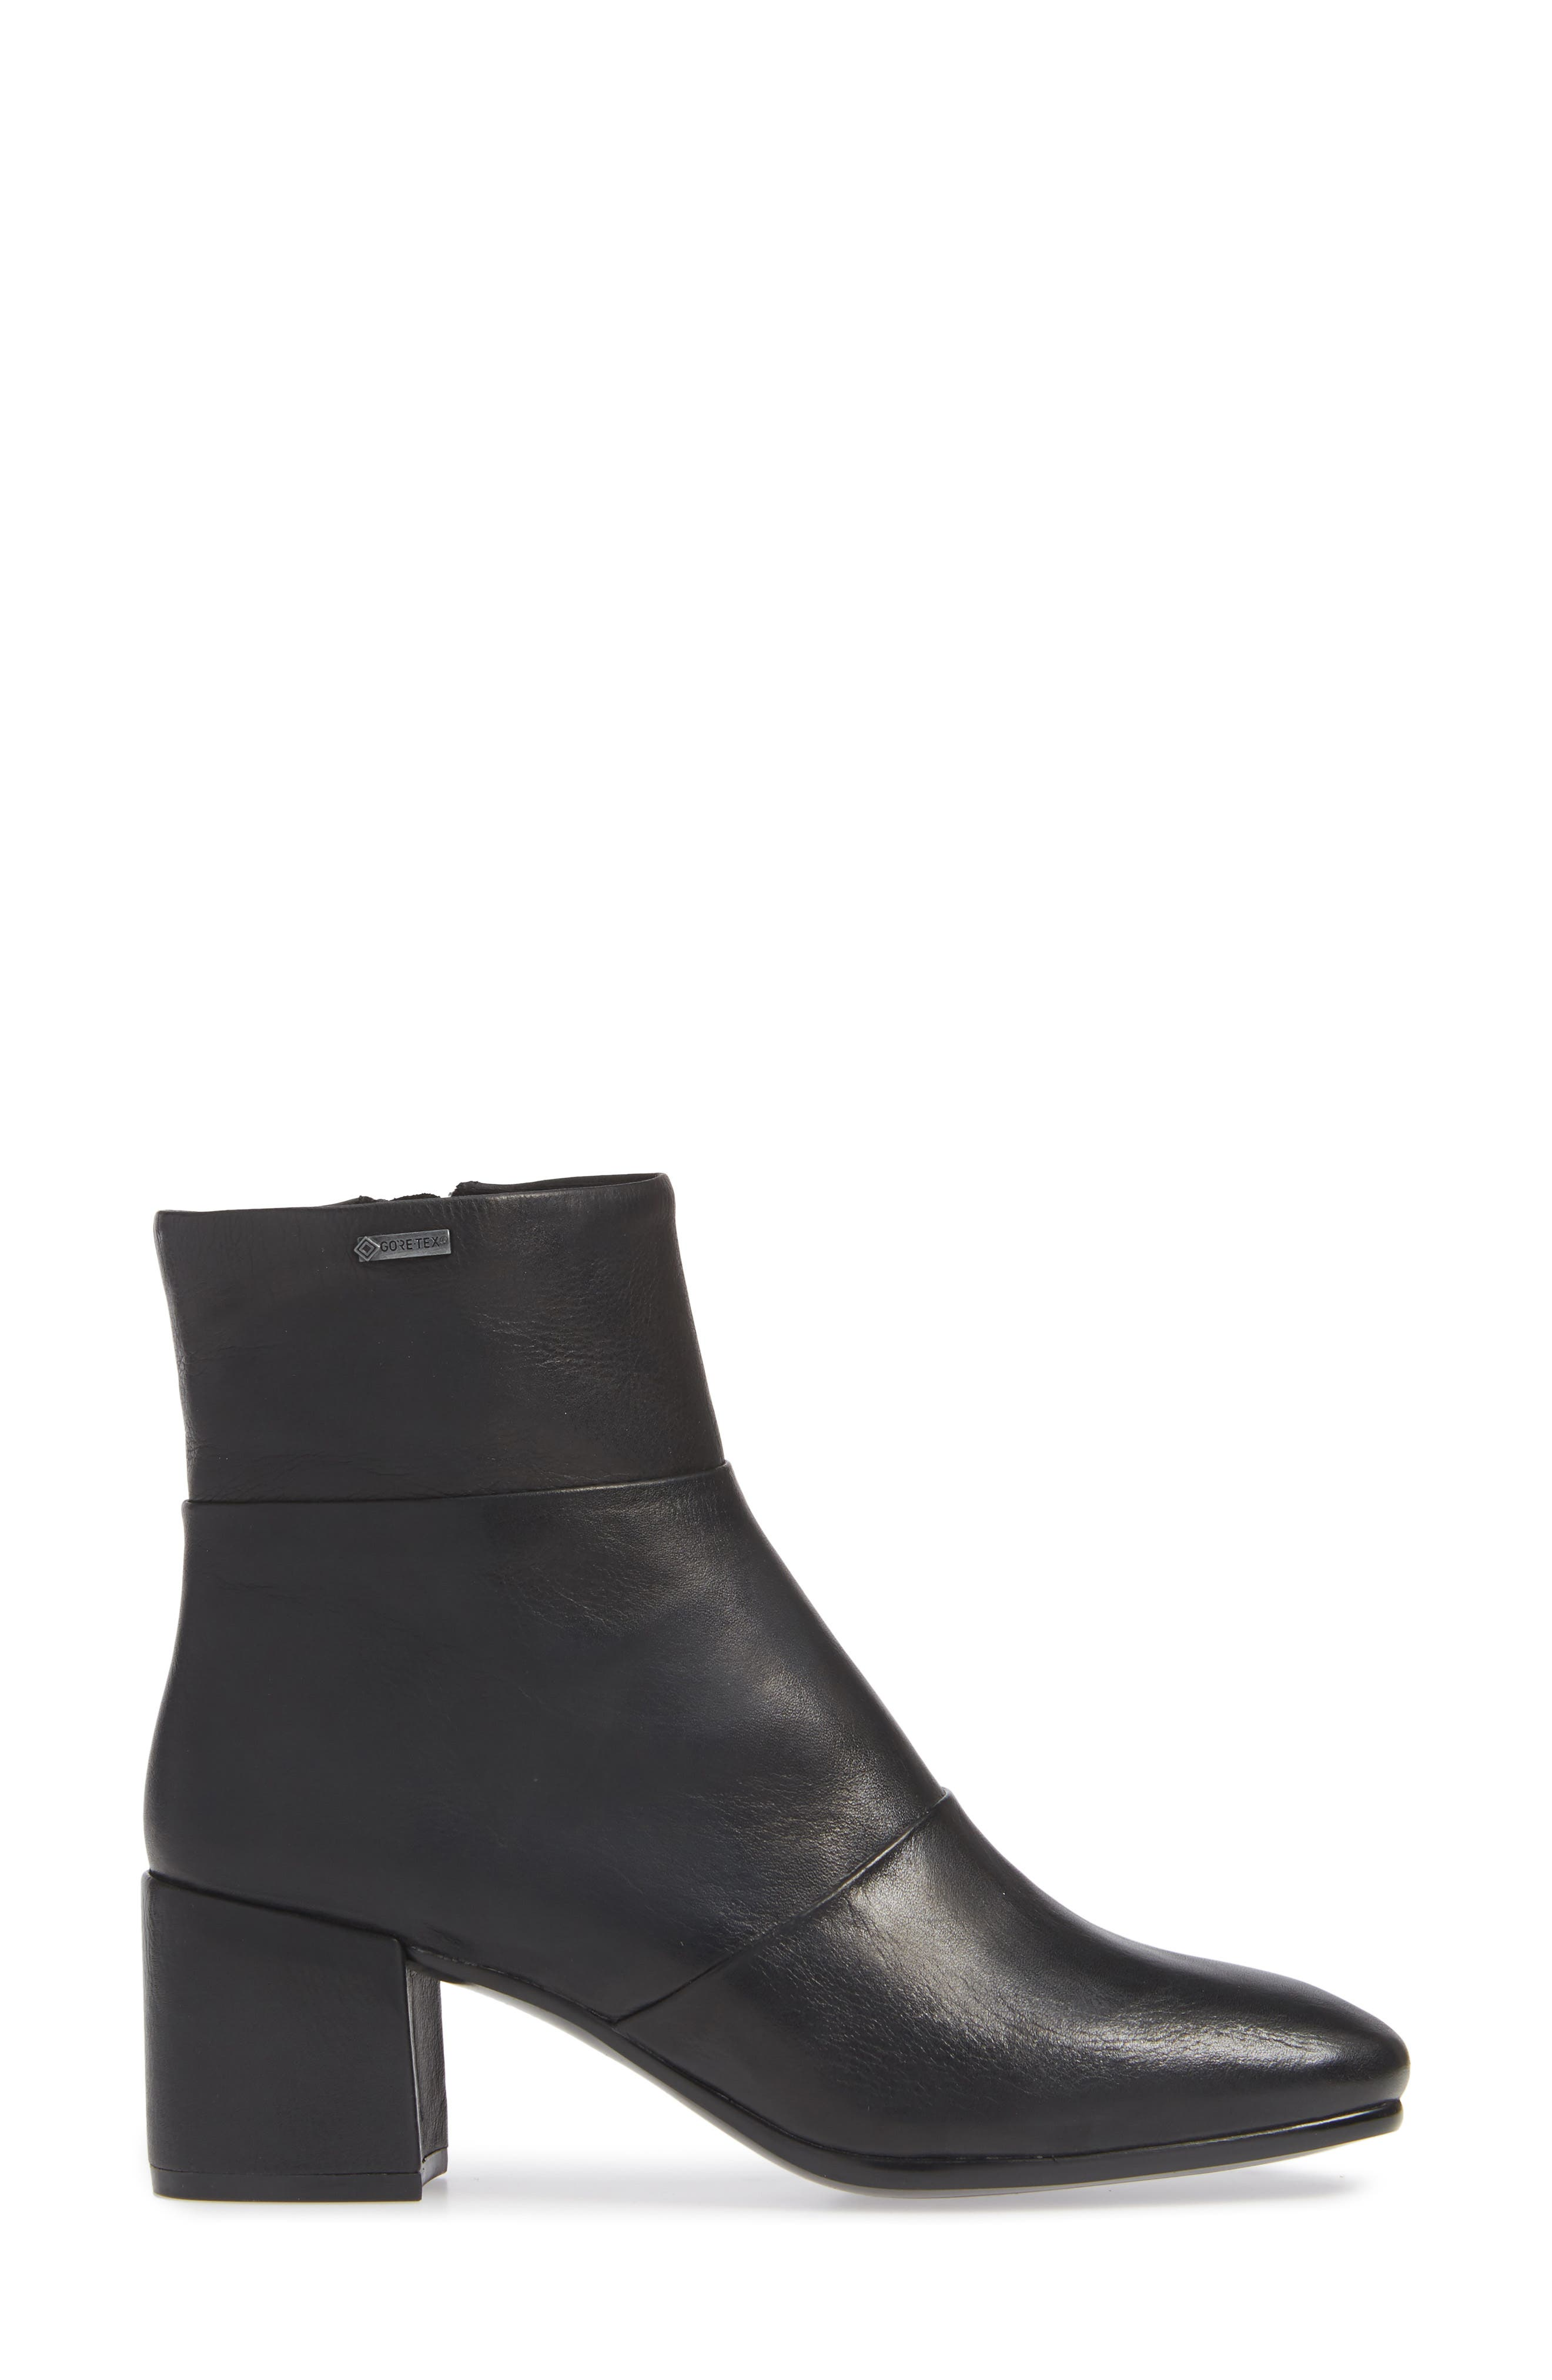 Eryc Bootie,                             Alternate thumbnail 3, color,                             BLACK LEATHER